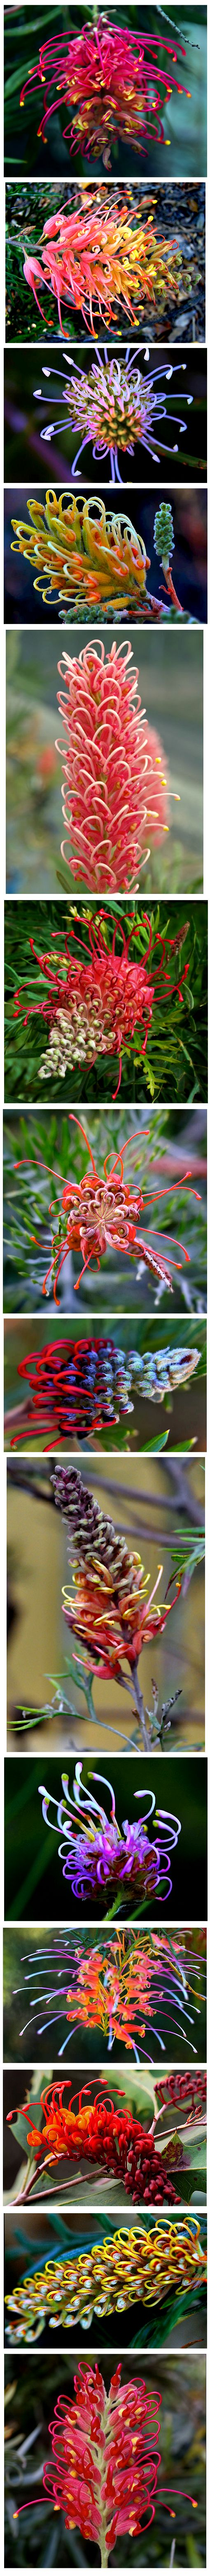 Grevillea, here are just a few examples of our unique Australian Beauty.